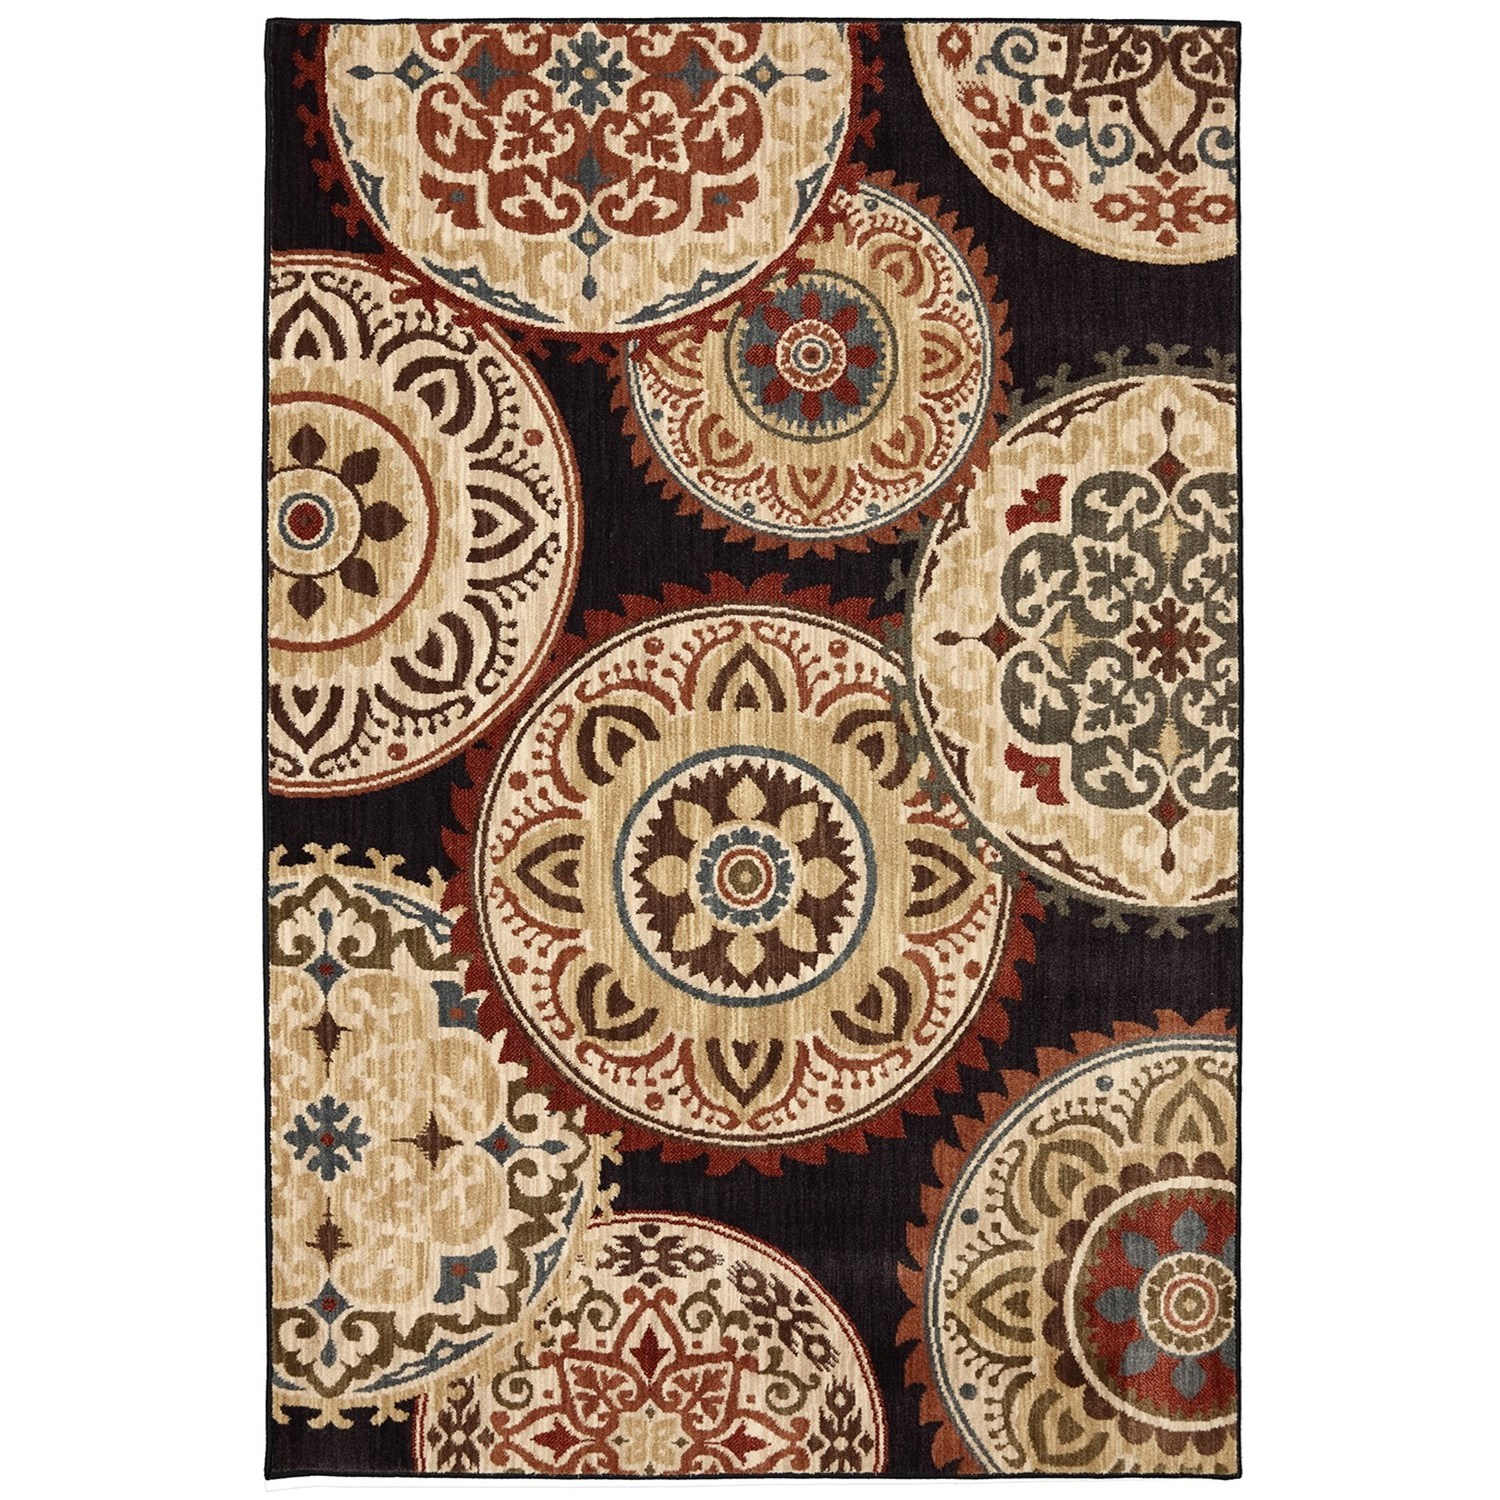 """Dryden 9' 6""""x12' 11"""" Summit View Muslin Area Rug by American Rug Craftsmen at Alison Craig Home Furnishings"""